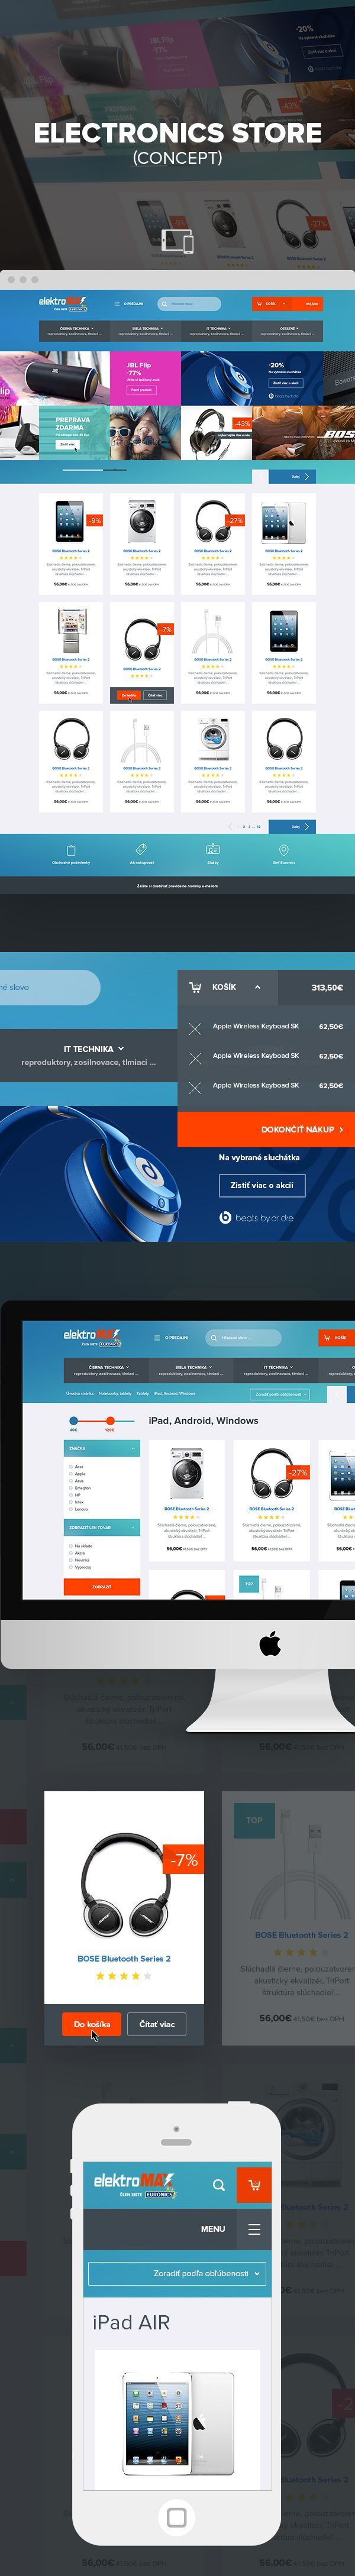 Concept of e commerce  electronic store